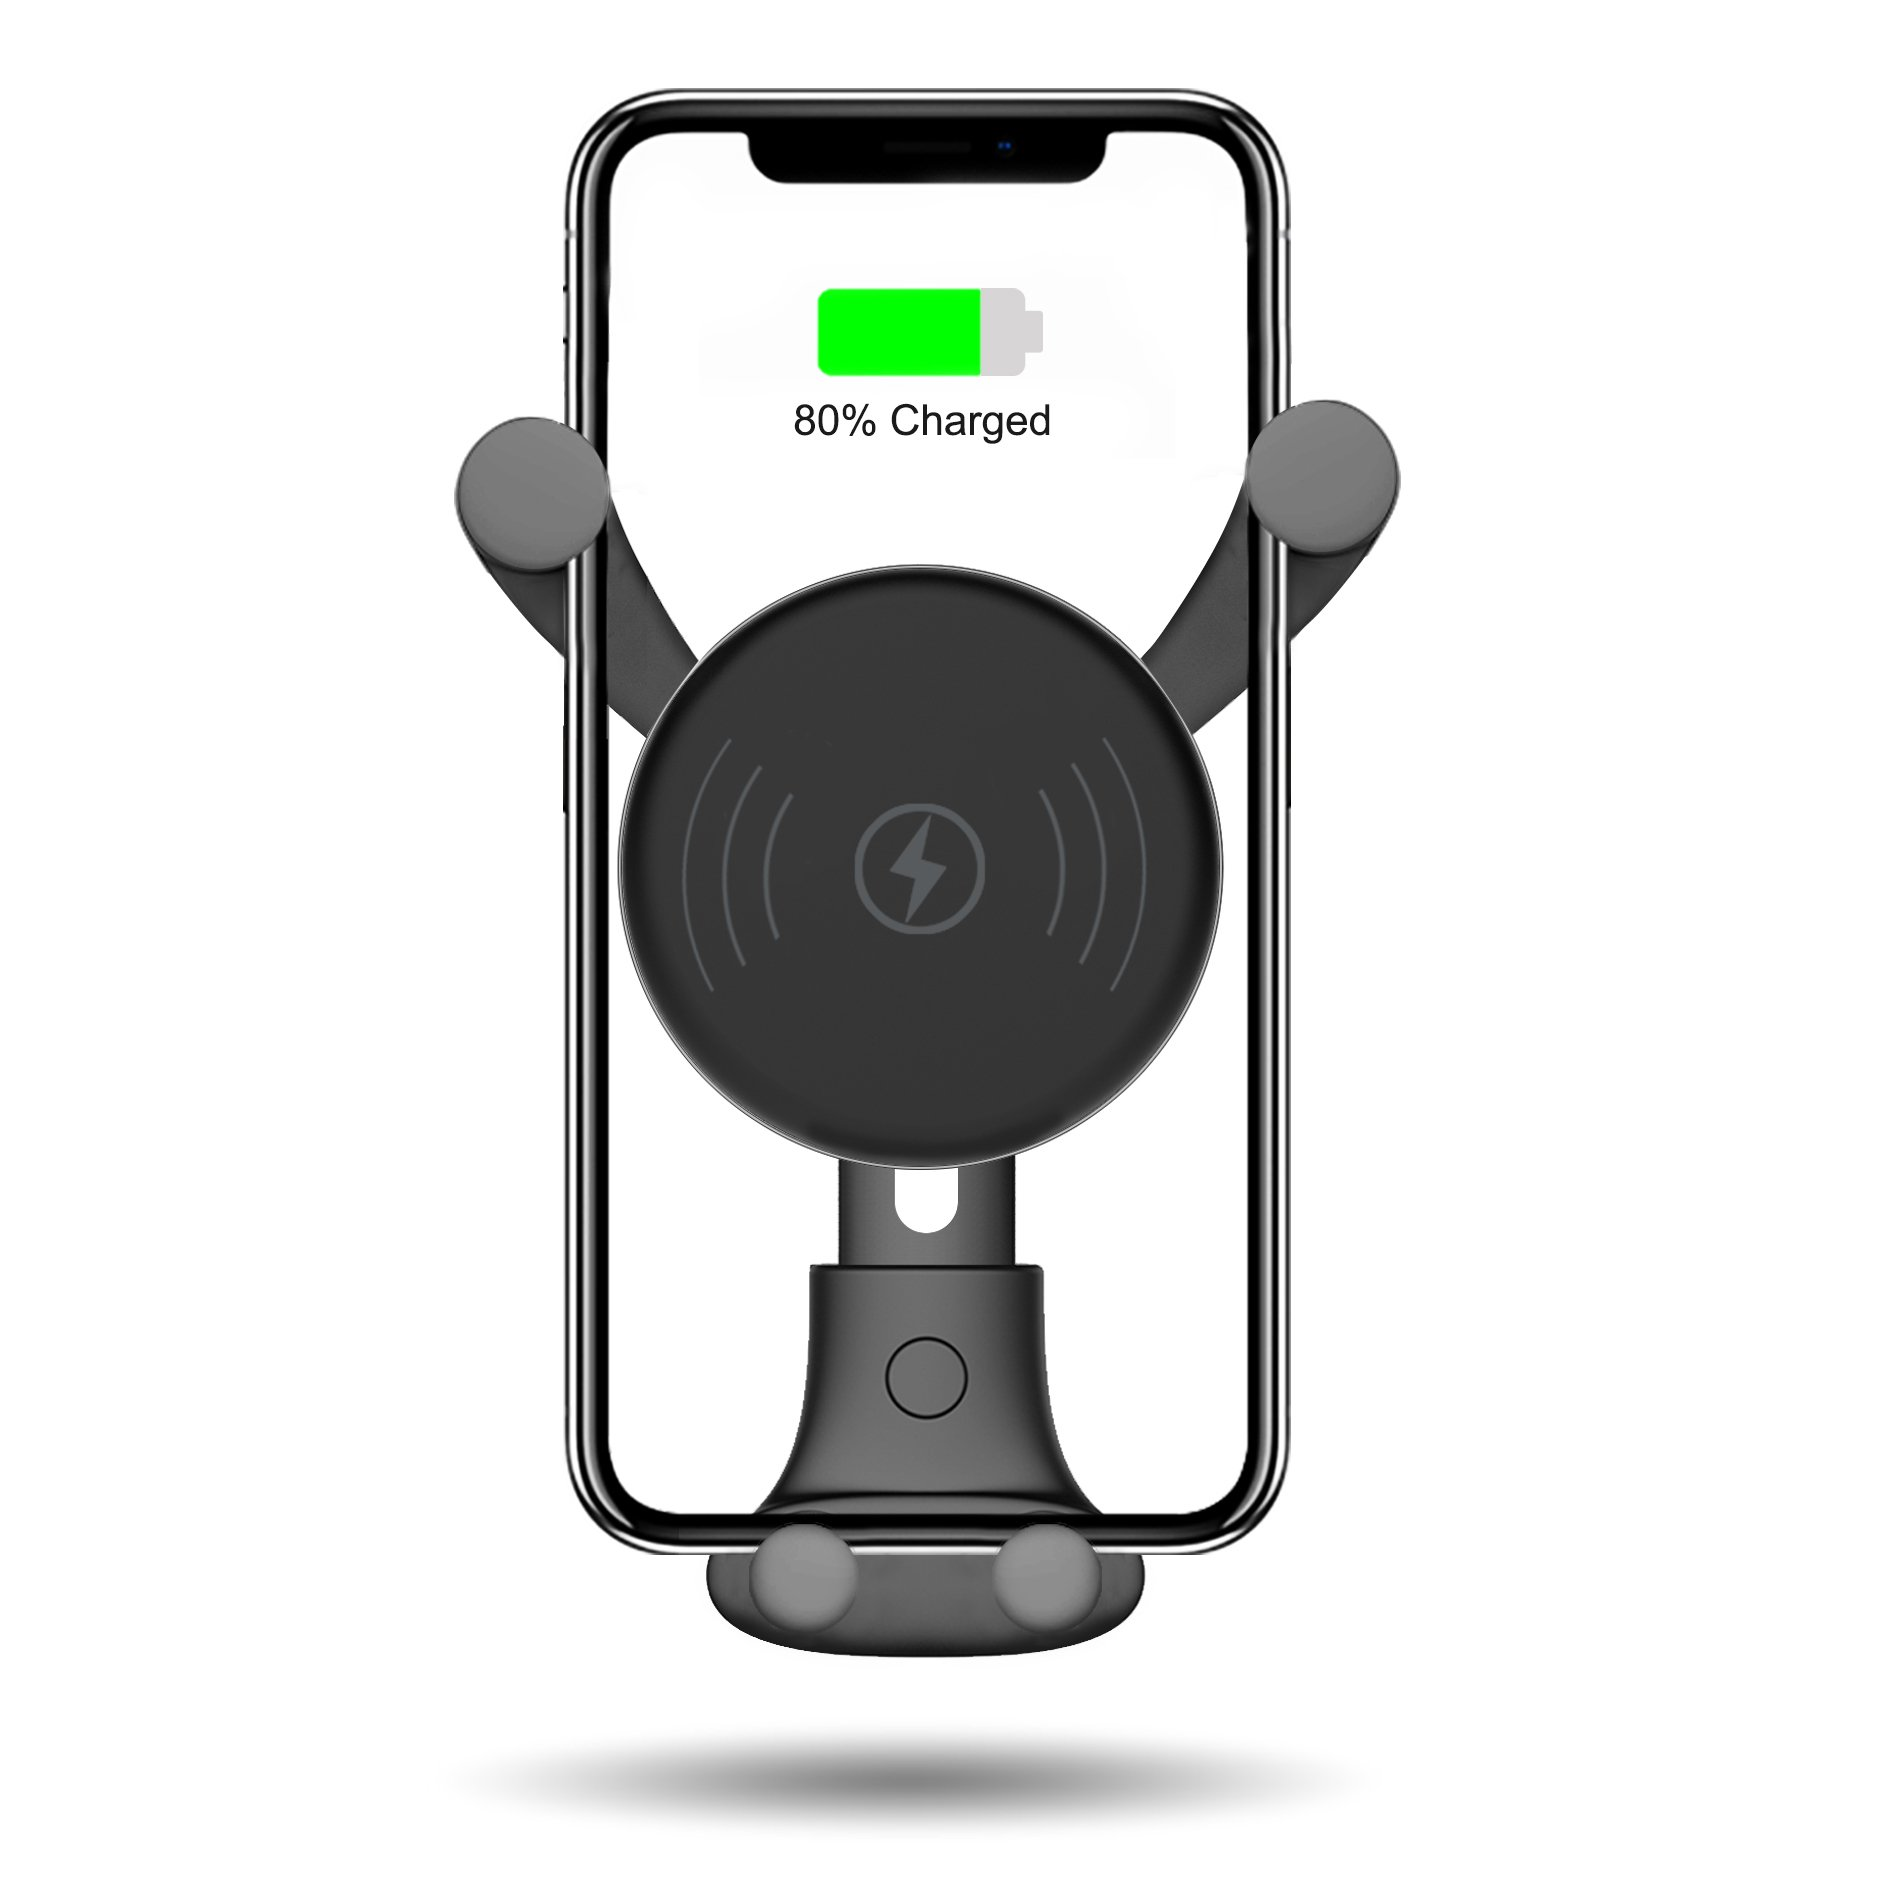 10W Wireless Car Charger, Wireless Fast Car Mount, Air Vent Phone Holder, Fast Charge for Samsung Galaxy S9, S9 plus, S8, S8 plus,note 8, note 5, Standard Charge for iPhone X, iPhone 8, iPhone 8 Plus